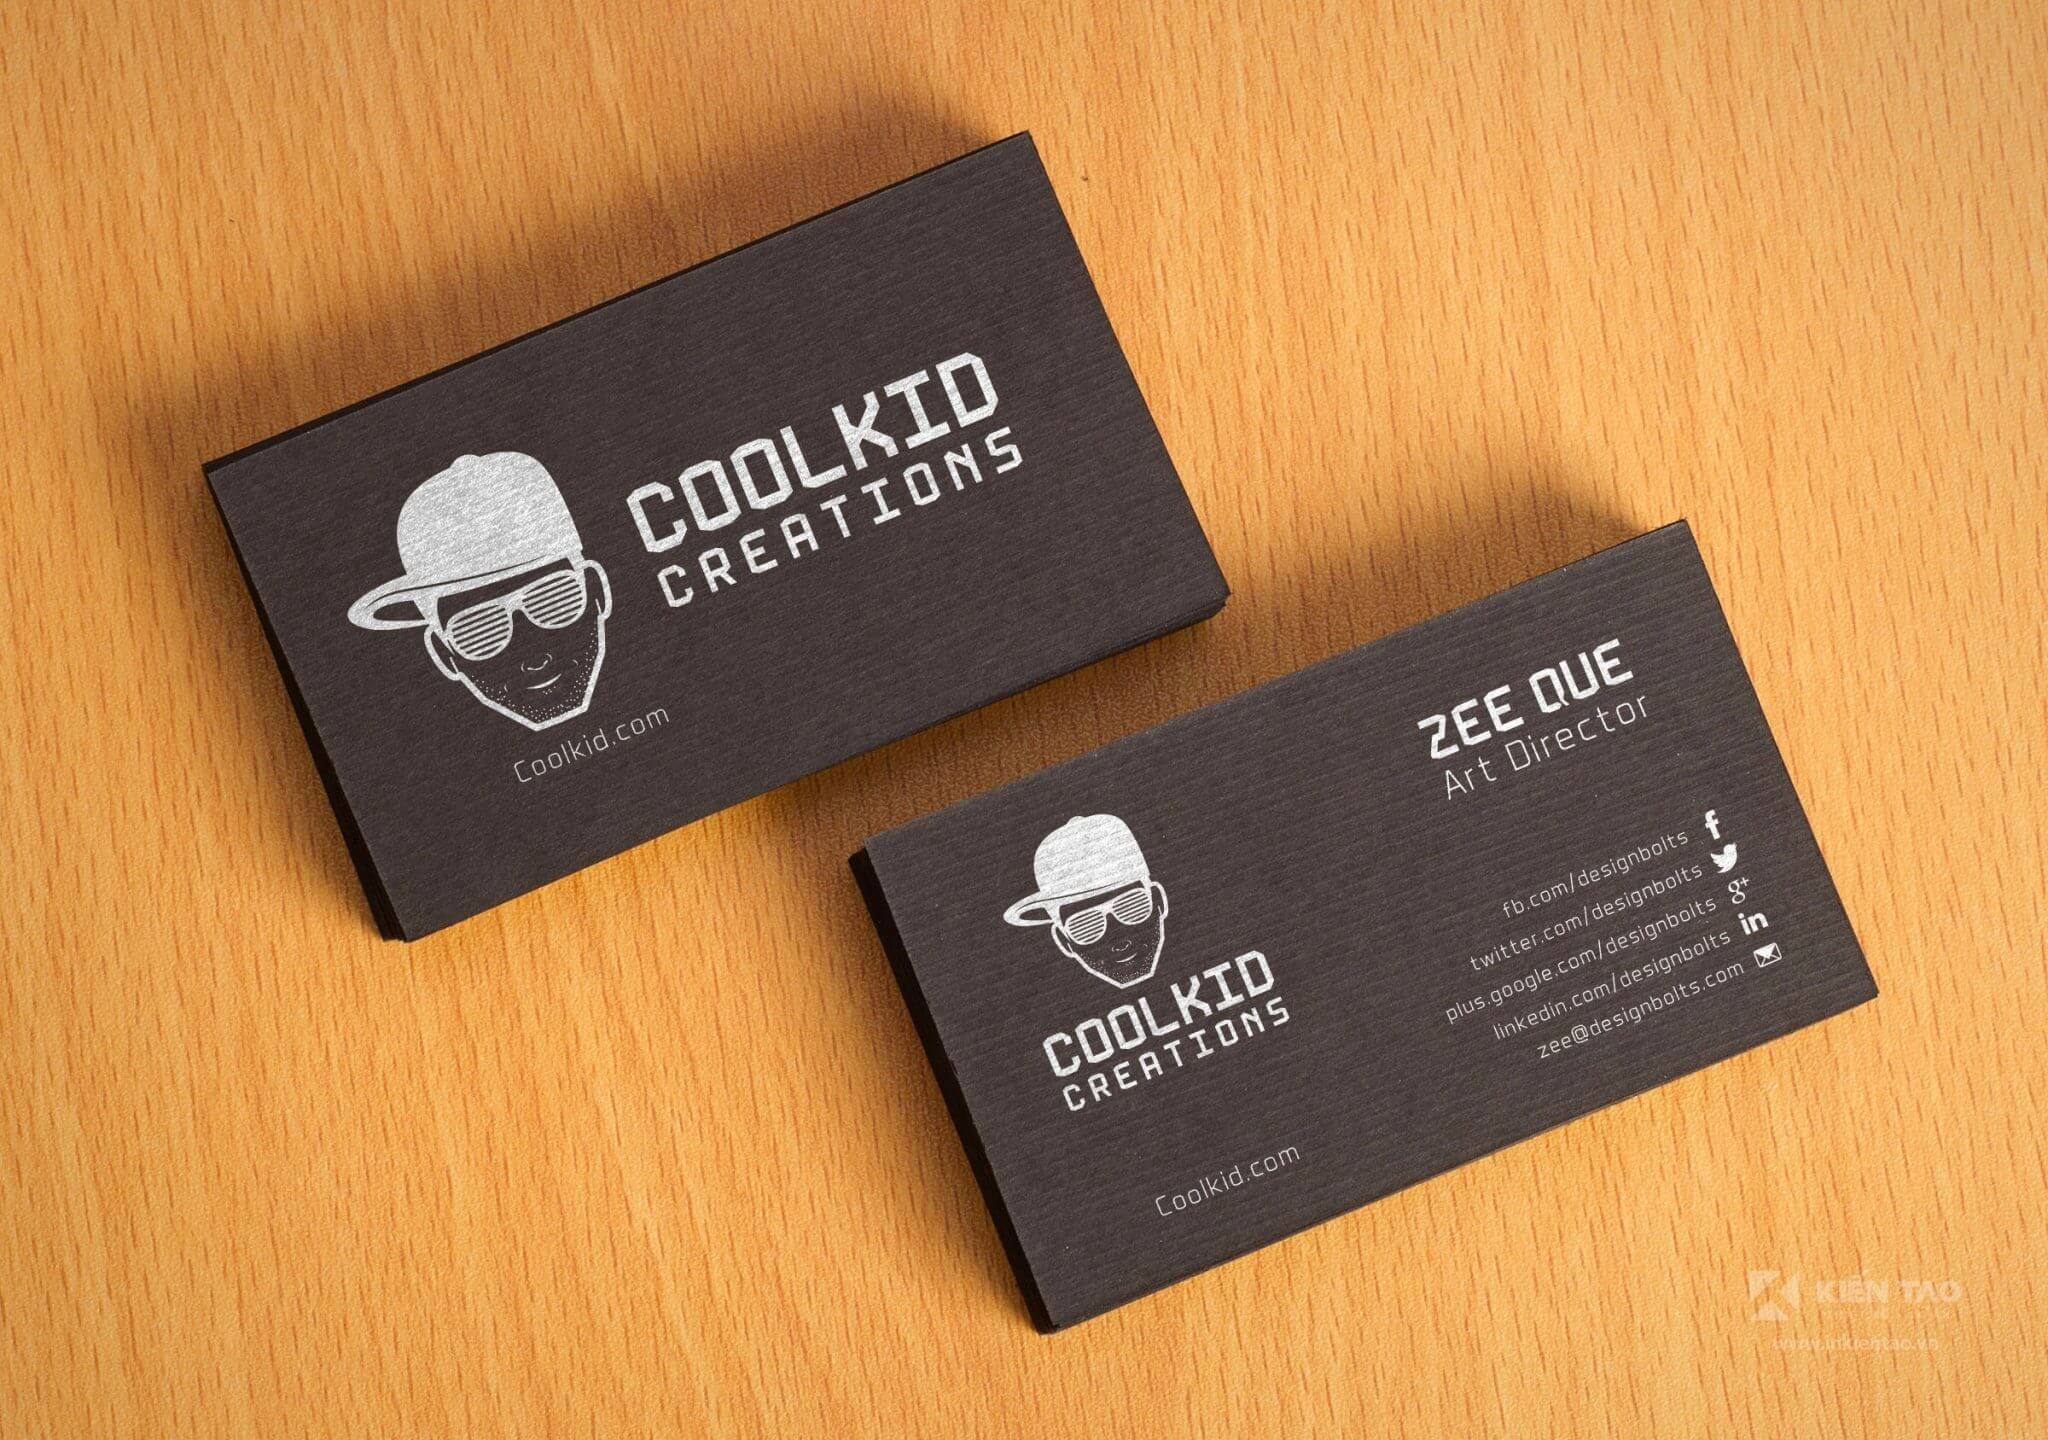 Free Black Textured Fancy Business Card Design Mockup PSD - Free-Black-Textured-Fancy-Business-Card-Design-Mockup-PSD